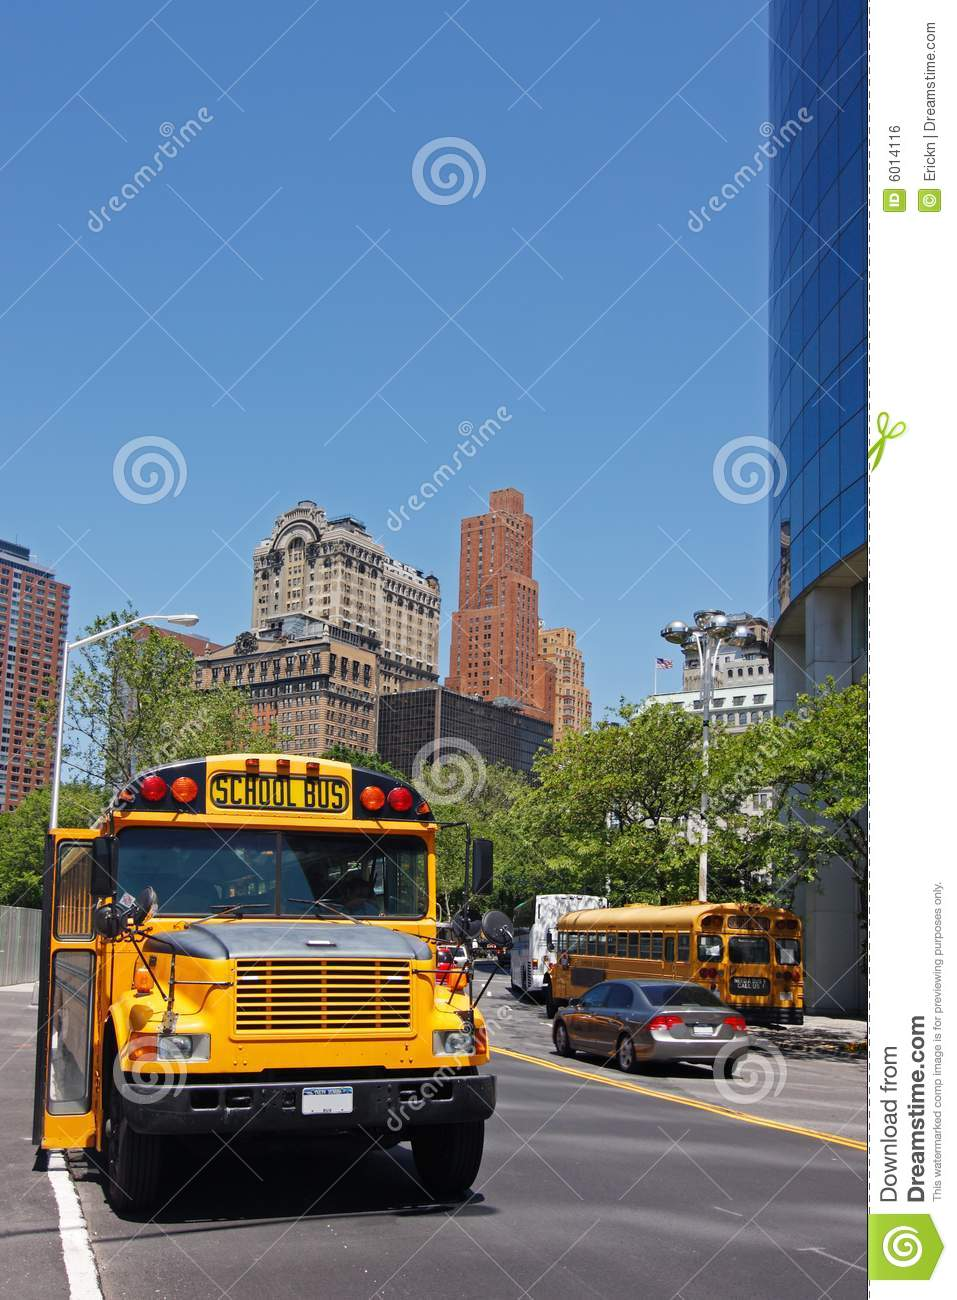 NYC School Bus Stock Photo. Image Of Manhattan, States